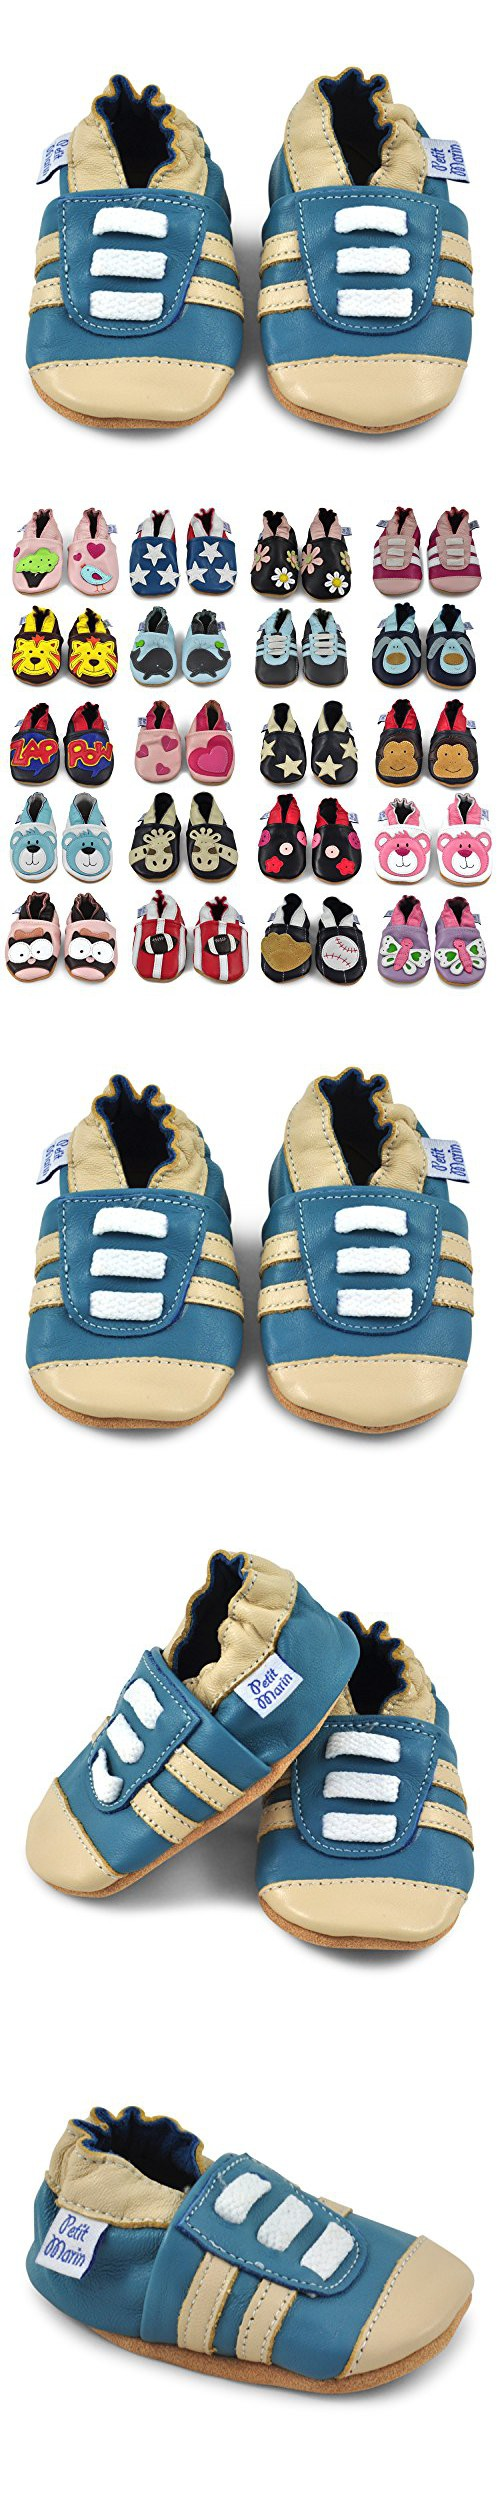 8cf216afa6141 Petit Marin Beautiful Soft Leather Baby Shoes with Suede Soles – Toddler    Infant Shoes - Crib Shoes – Baby First Walking Shoes - Pre-walker Shoes  ...